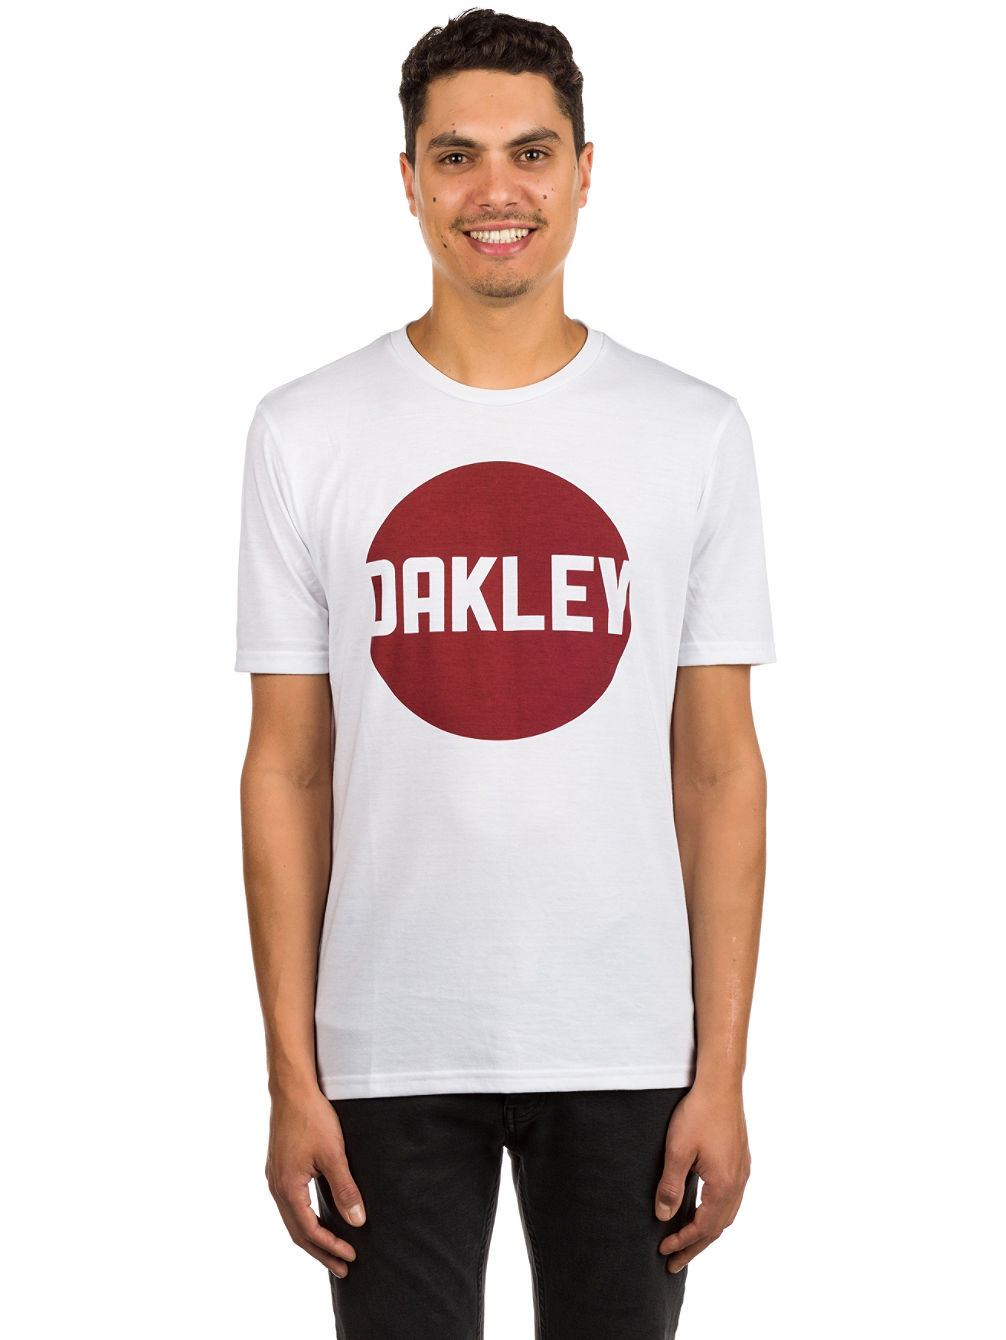 O-Oakley Circle T-Shirt